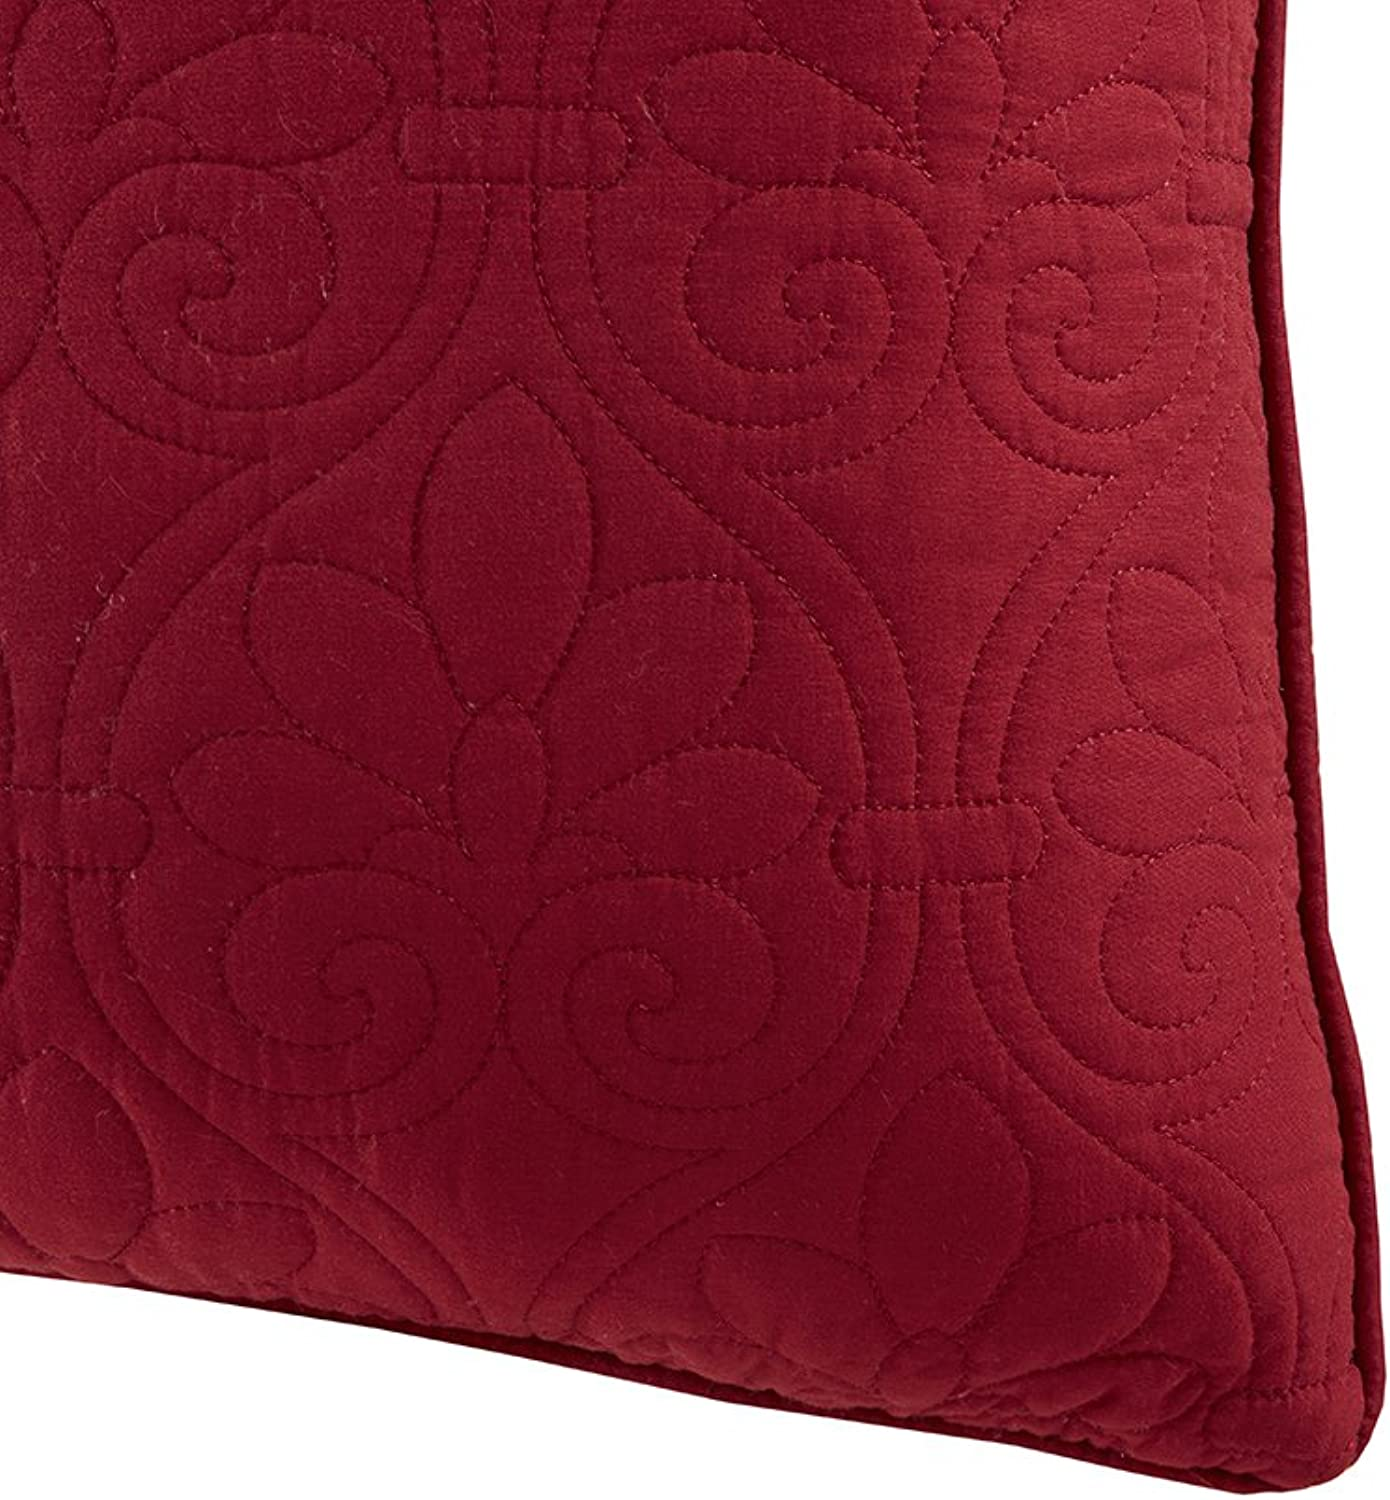 Madison Park II02-2251 Quebec Quilted Square Pillow Pair Red 20x20